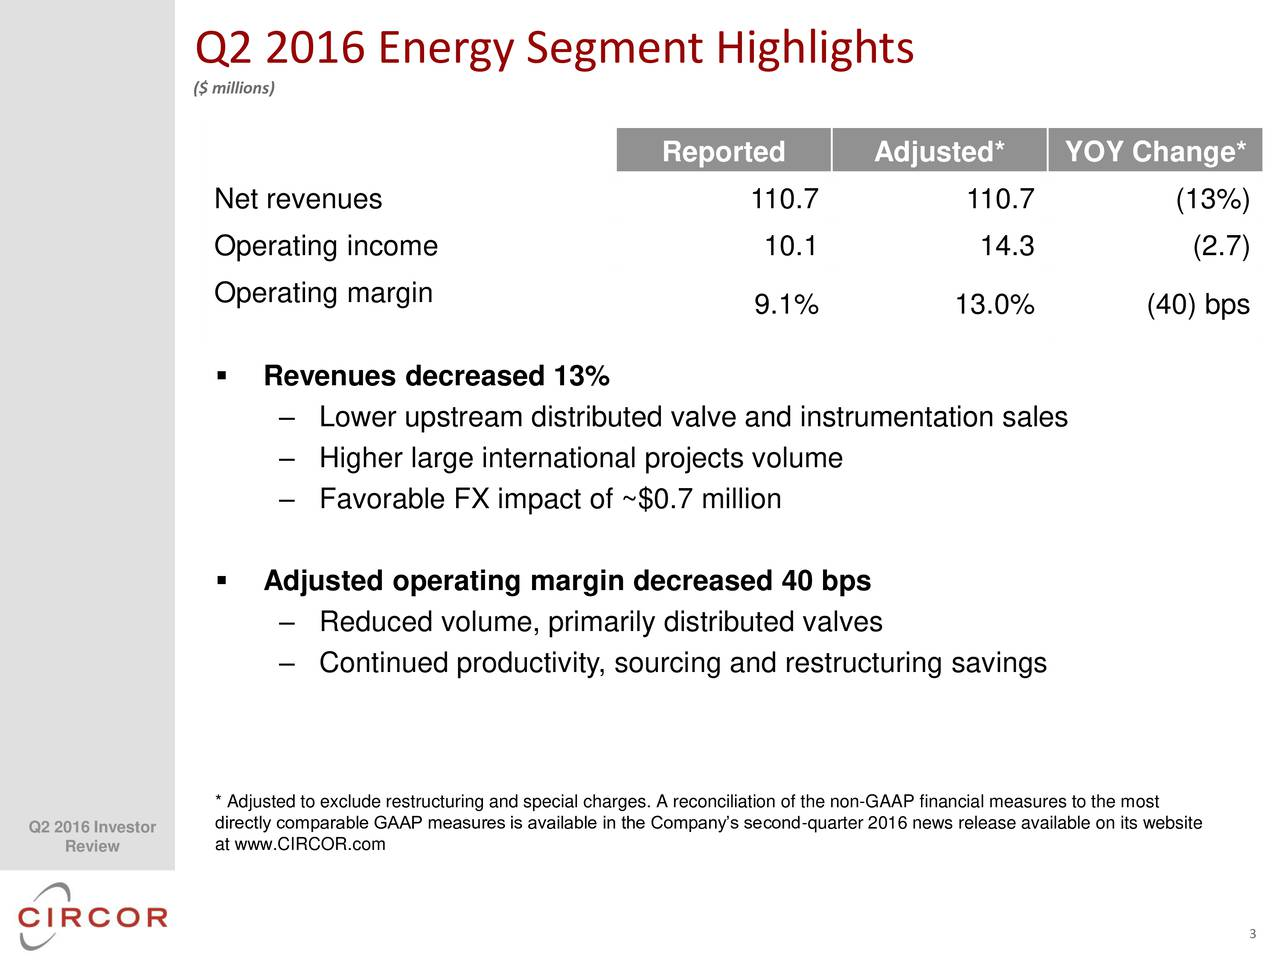 ($ millions) Reported Adjusted* YOY Change* Net revenues 110.7 110.7 (13%) Operating income 10.1 14.3 (2.7) Operating margin 9.1% 13.0% (40) bps Revenues decreased 13% Lower upstream distributed valve and instrumentation sales Higher large international projects volume Favorable FX impact of ~$0.7 million Adjusted operating margin decreased 40 bps Reduced volume, primarily distributed valves Continued productivity, sourcing and restructuring savings * Adjusted to exclude restructuring and special charges. A reconciliation of the non-GAAP financial measures to the most Q2 2016 Investorirectly comparable GAAP measures is available in the Companys second-quarter 2016 news release available on its website Review at www.CIRCOR.com 3